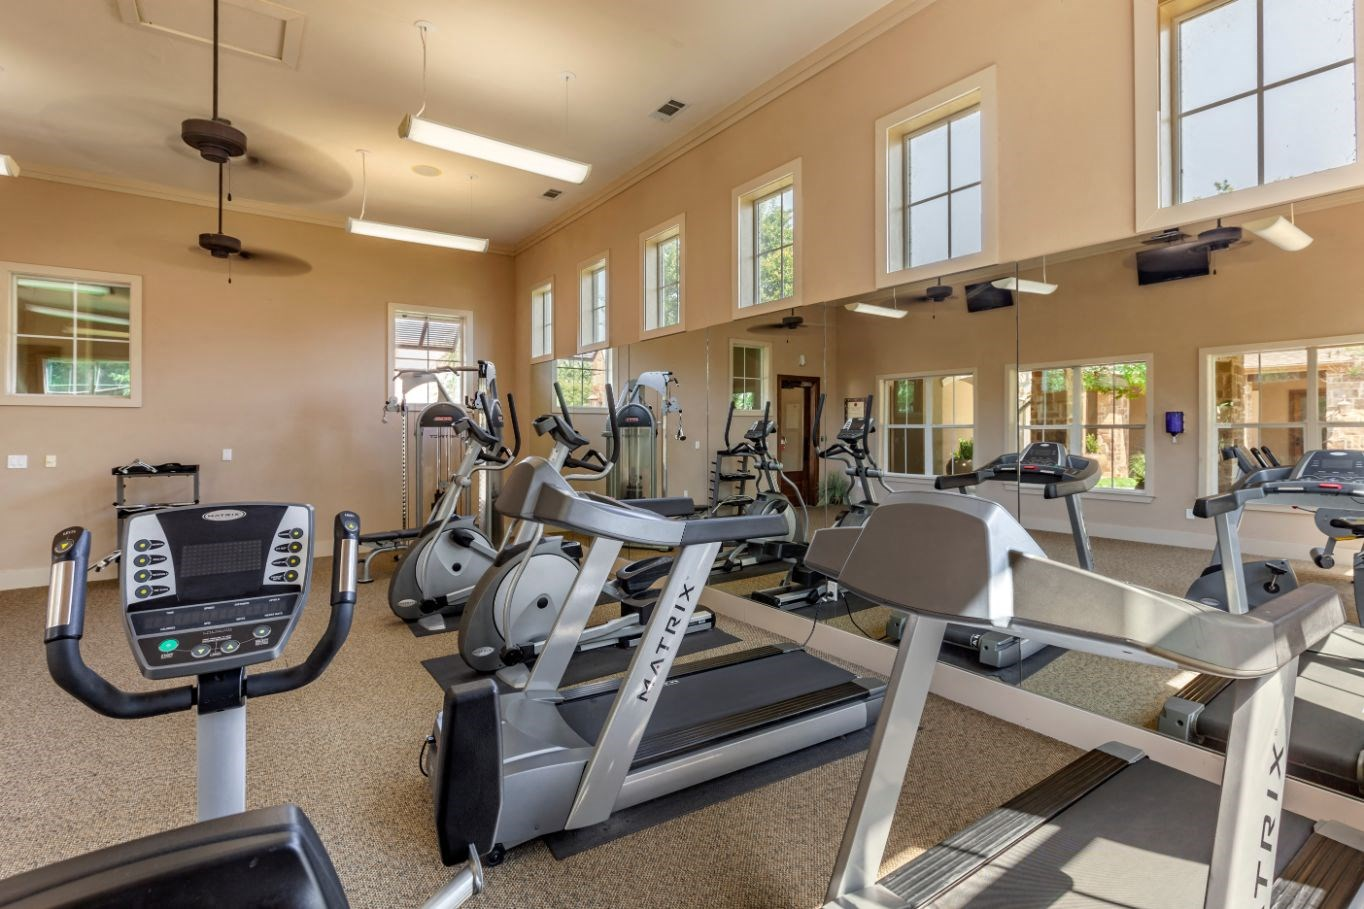 Fitness center with ceiling fans, treadmills, and stationary bikes with windows placed higher up on the walls.